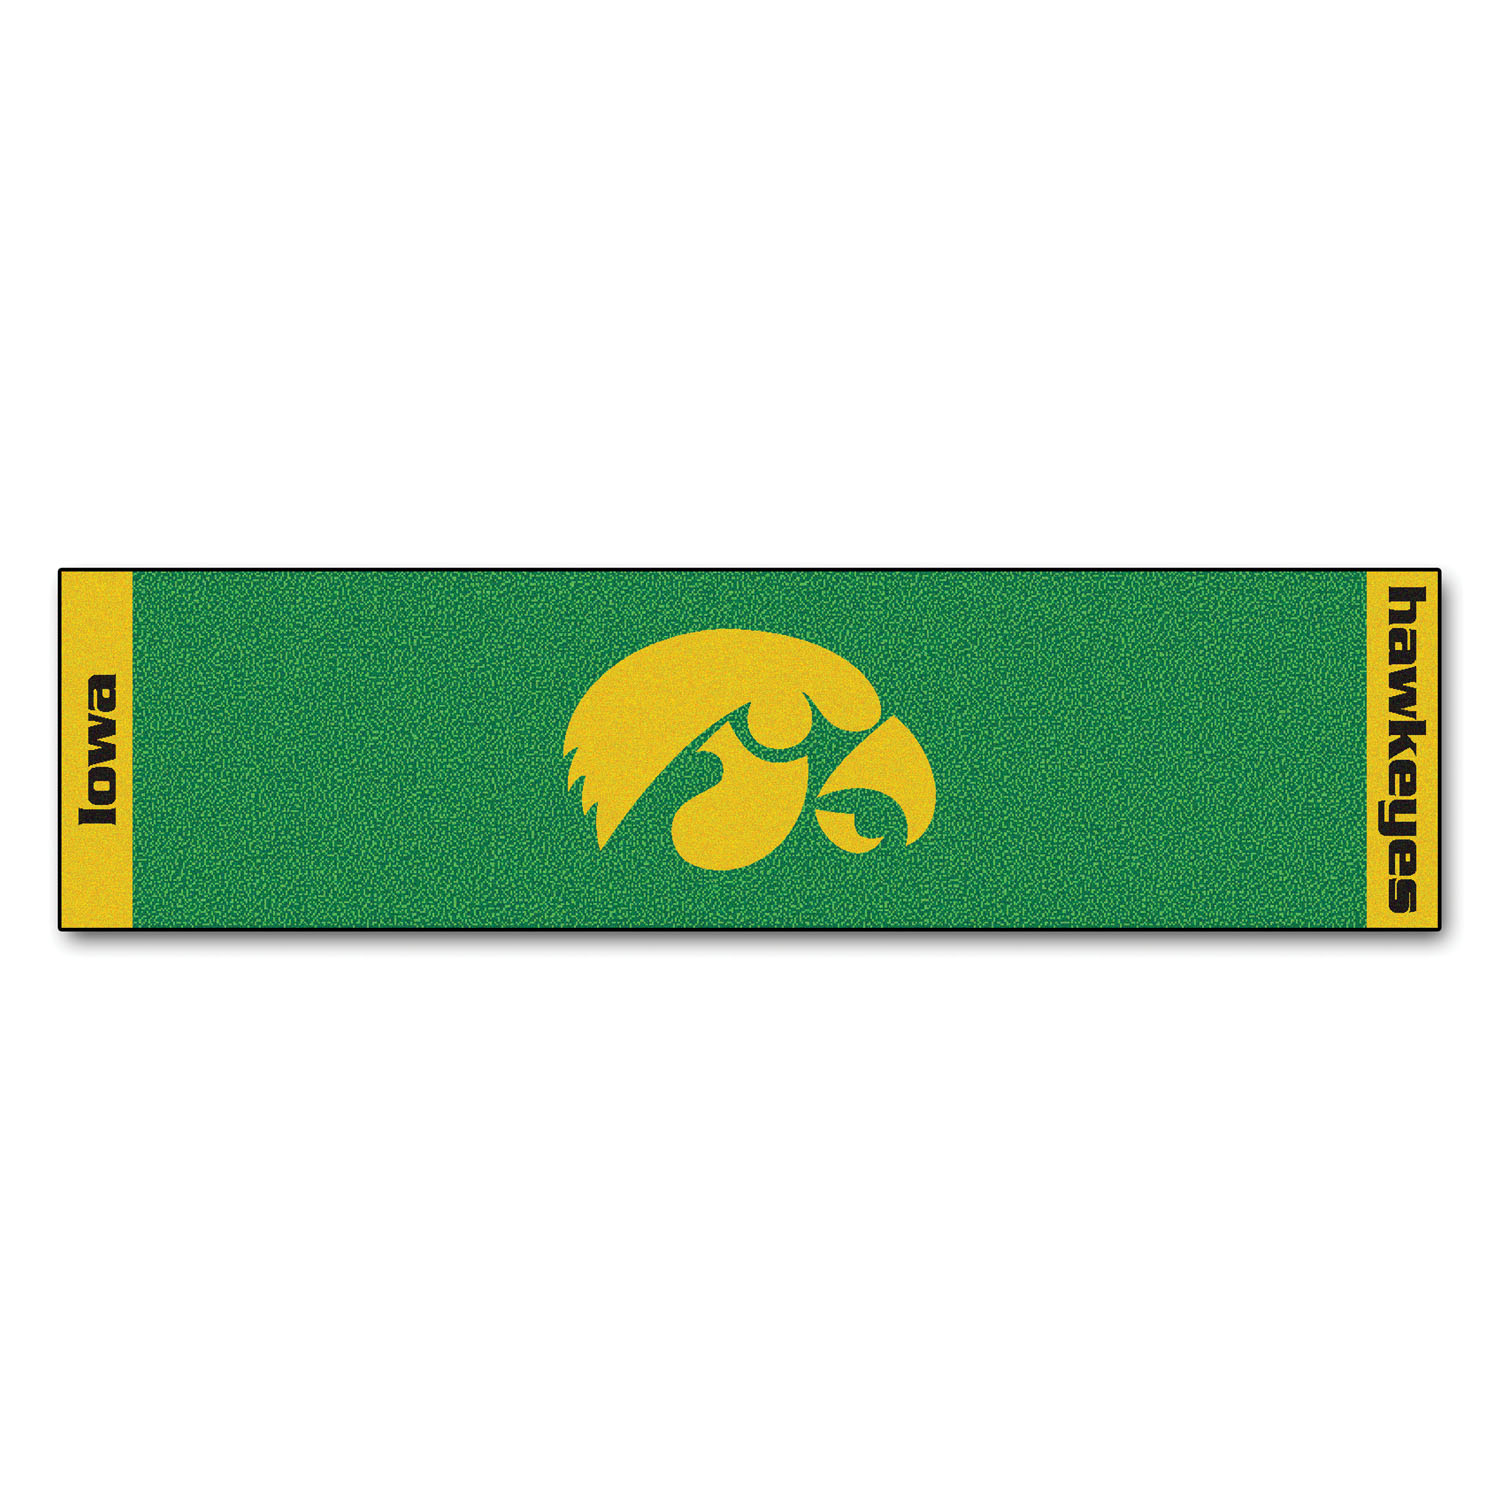 Fanmats Iowa Putting Green Runner